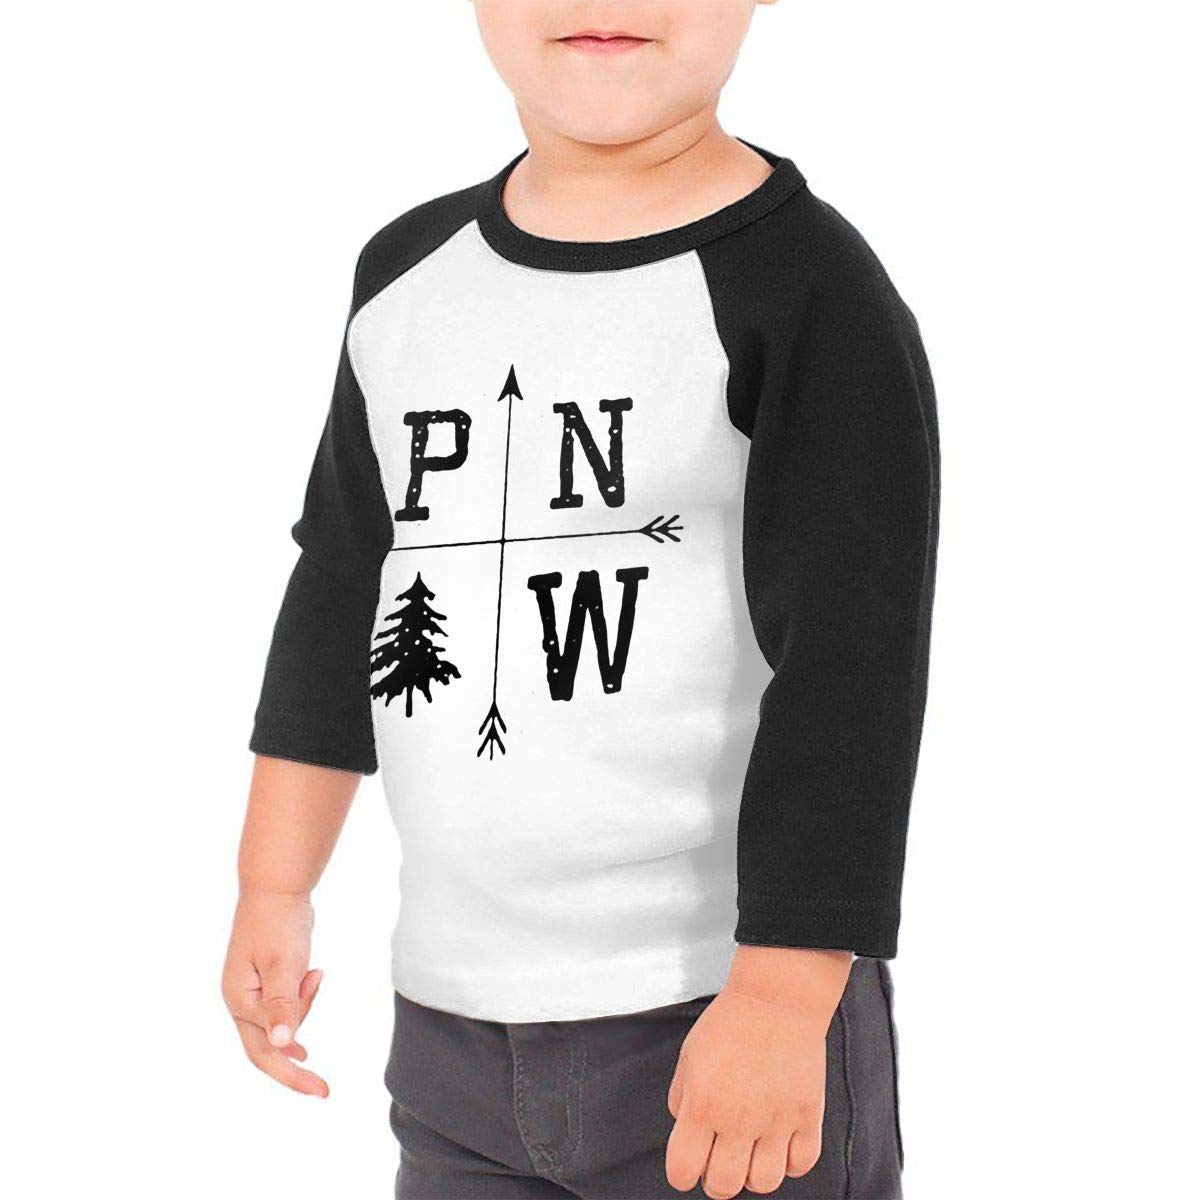 Pacific North West Unisex Toddler Baseball Jersey Contrast 3//4 Sleeves Tee